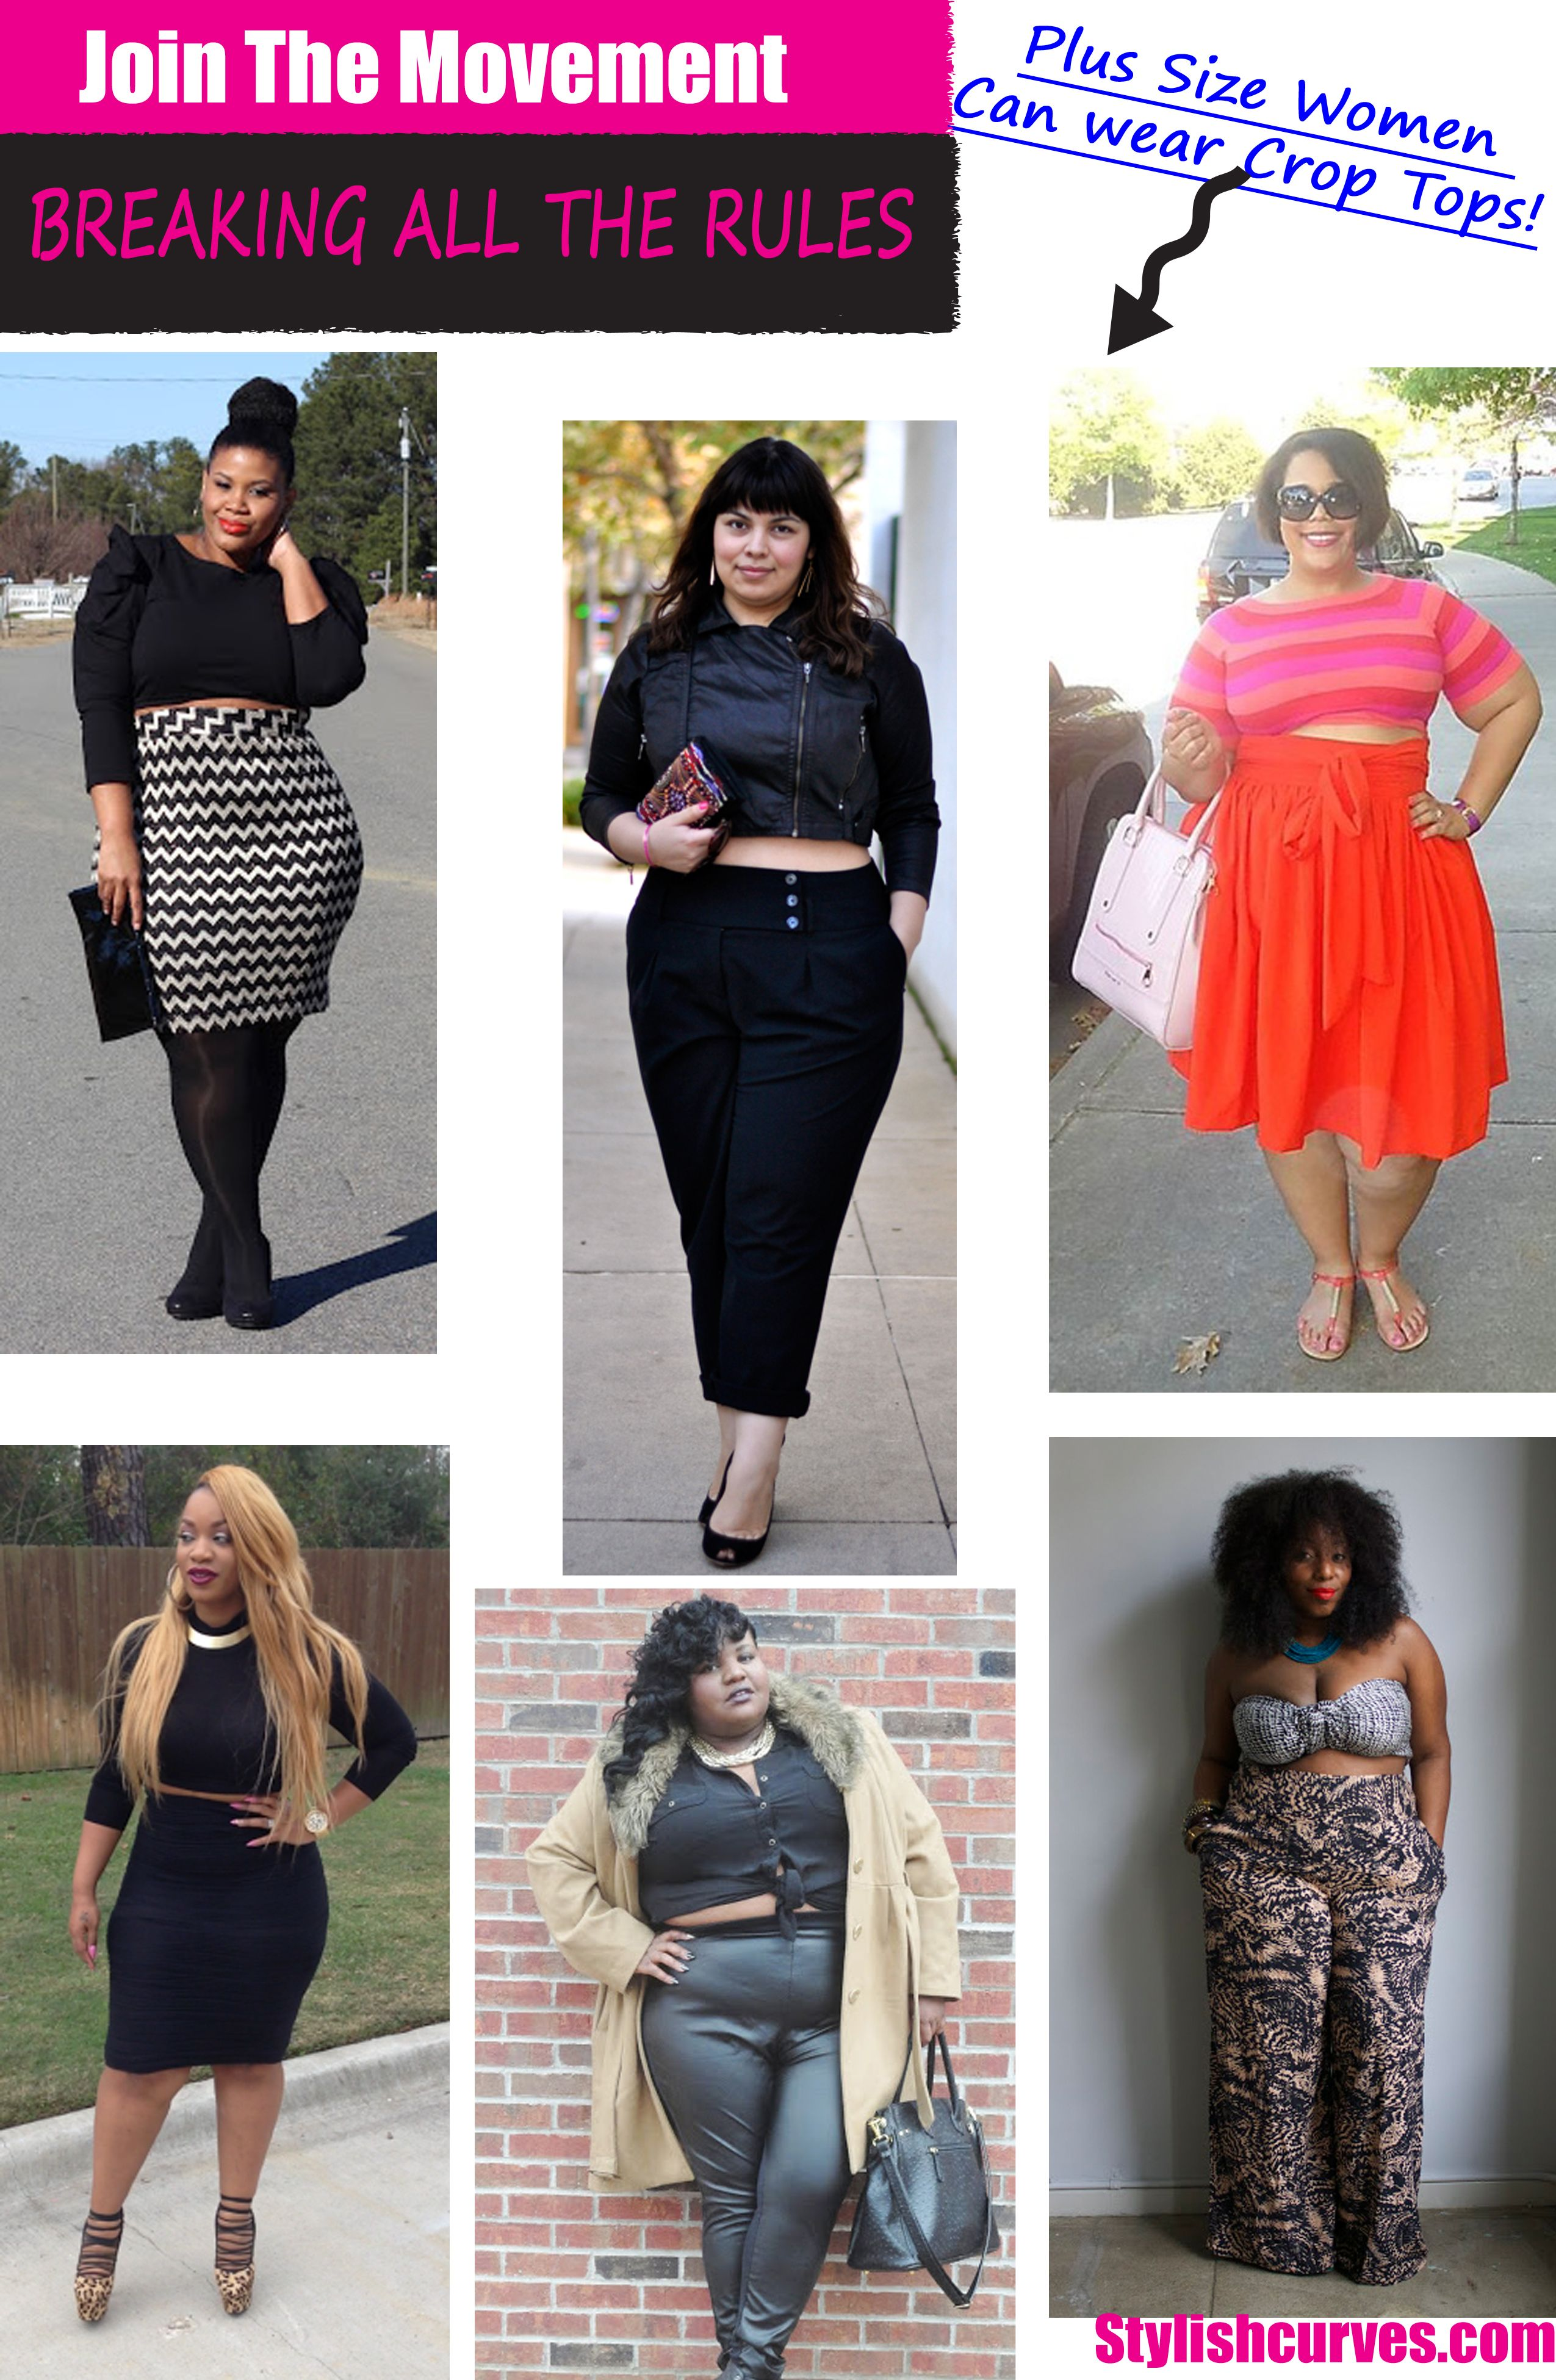 How to crop wear tops plus size